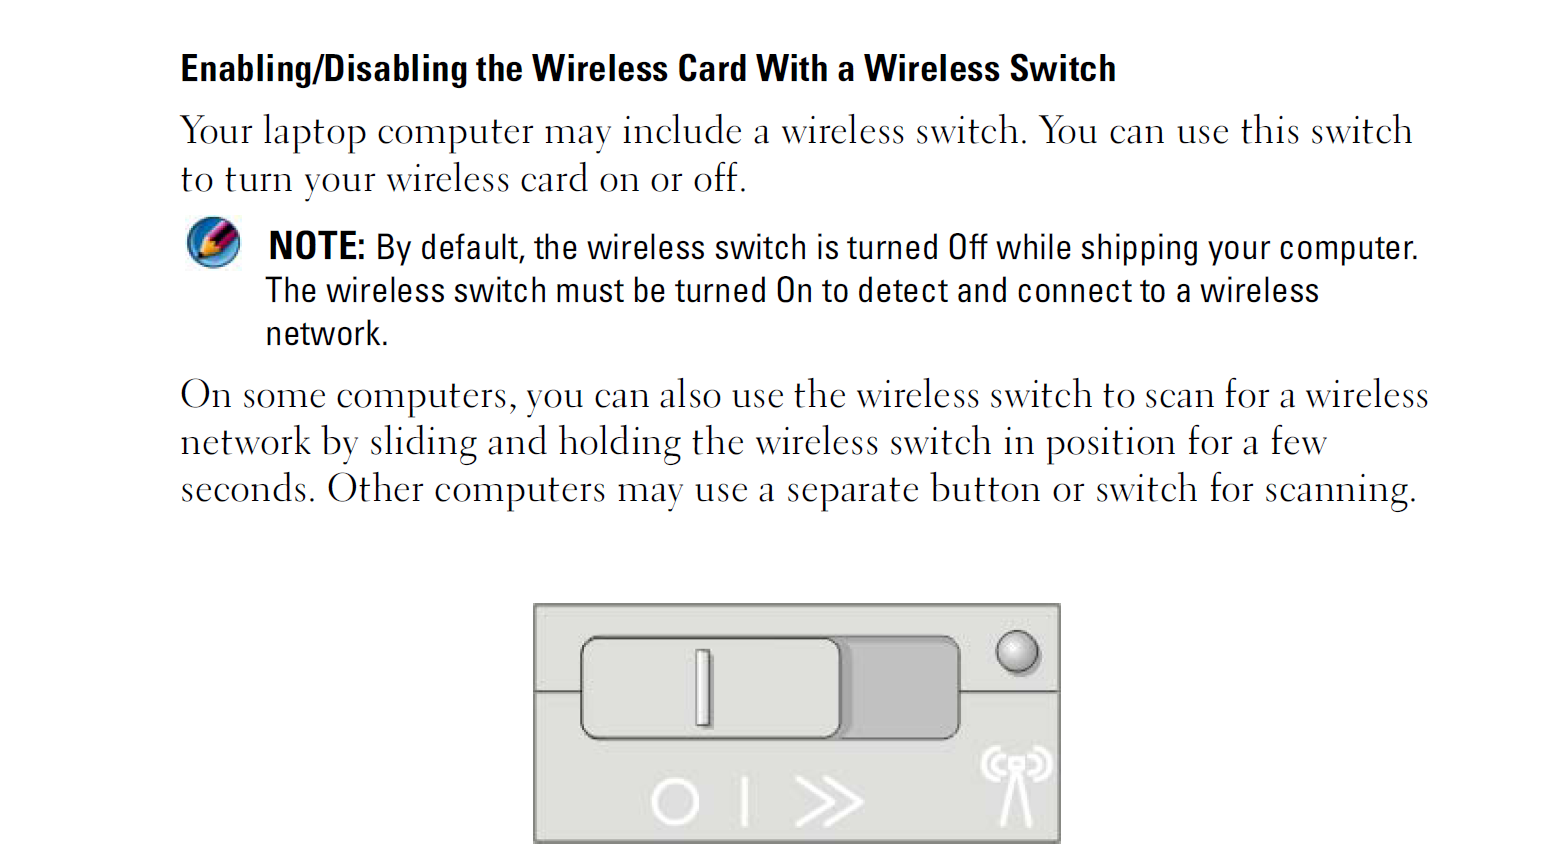 how to turn on wireless switch on my computer